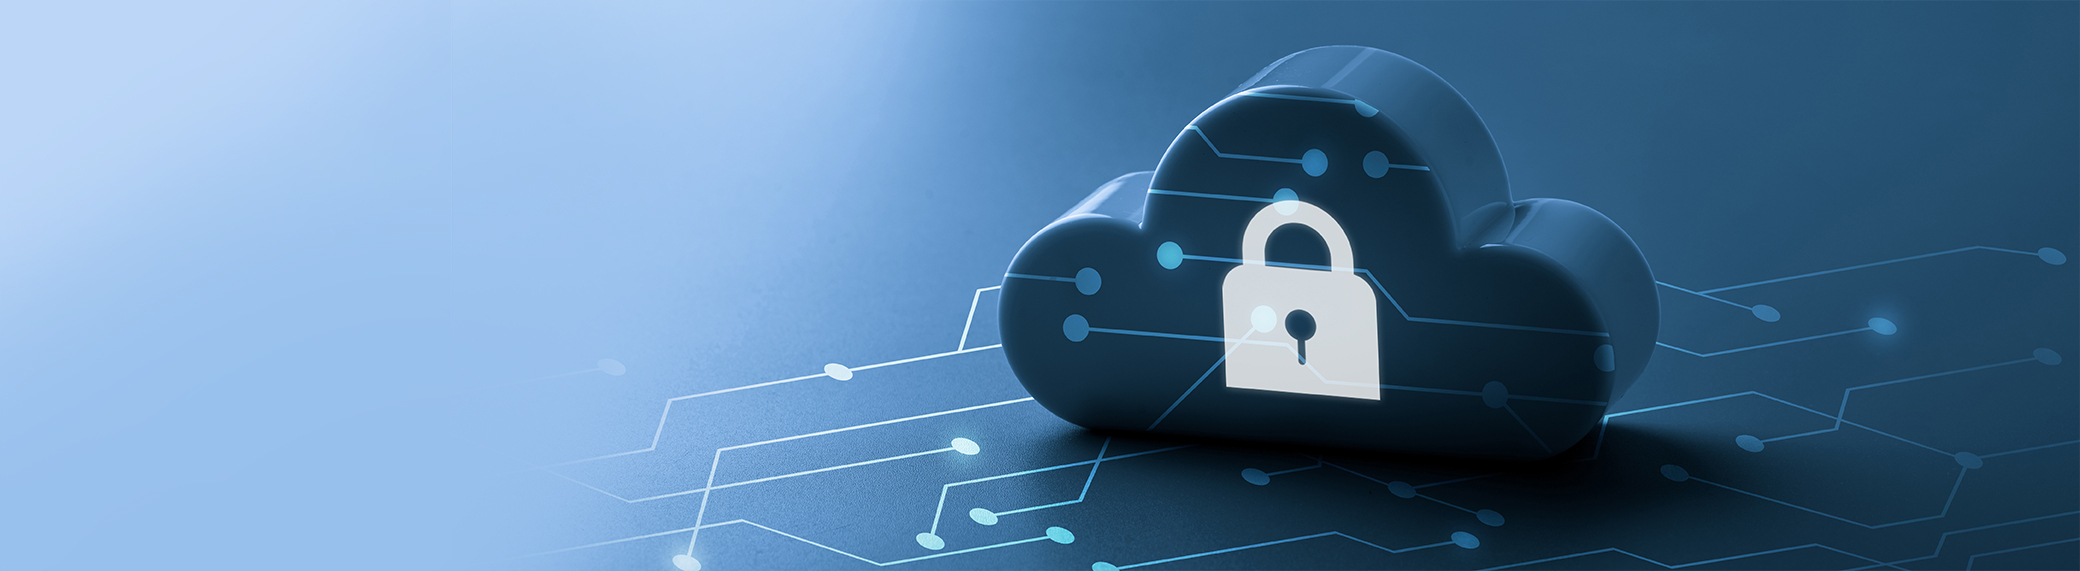 Cloud illustration with a key lock printed on it